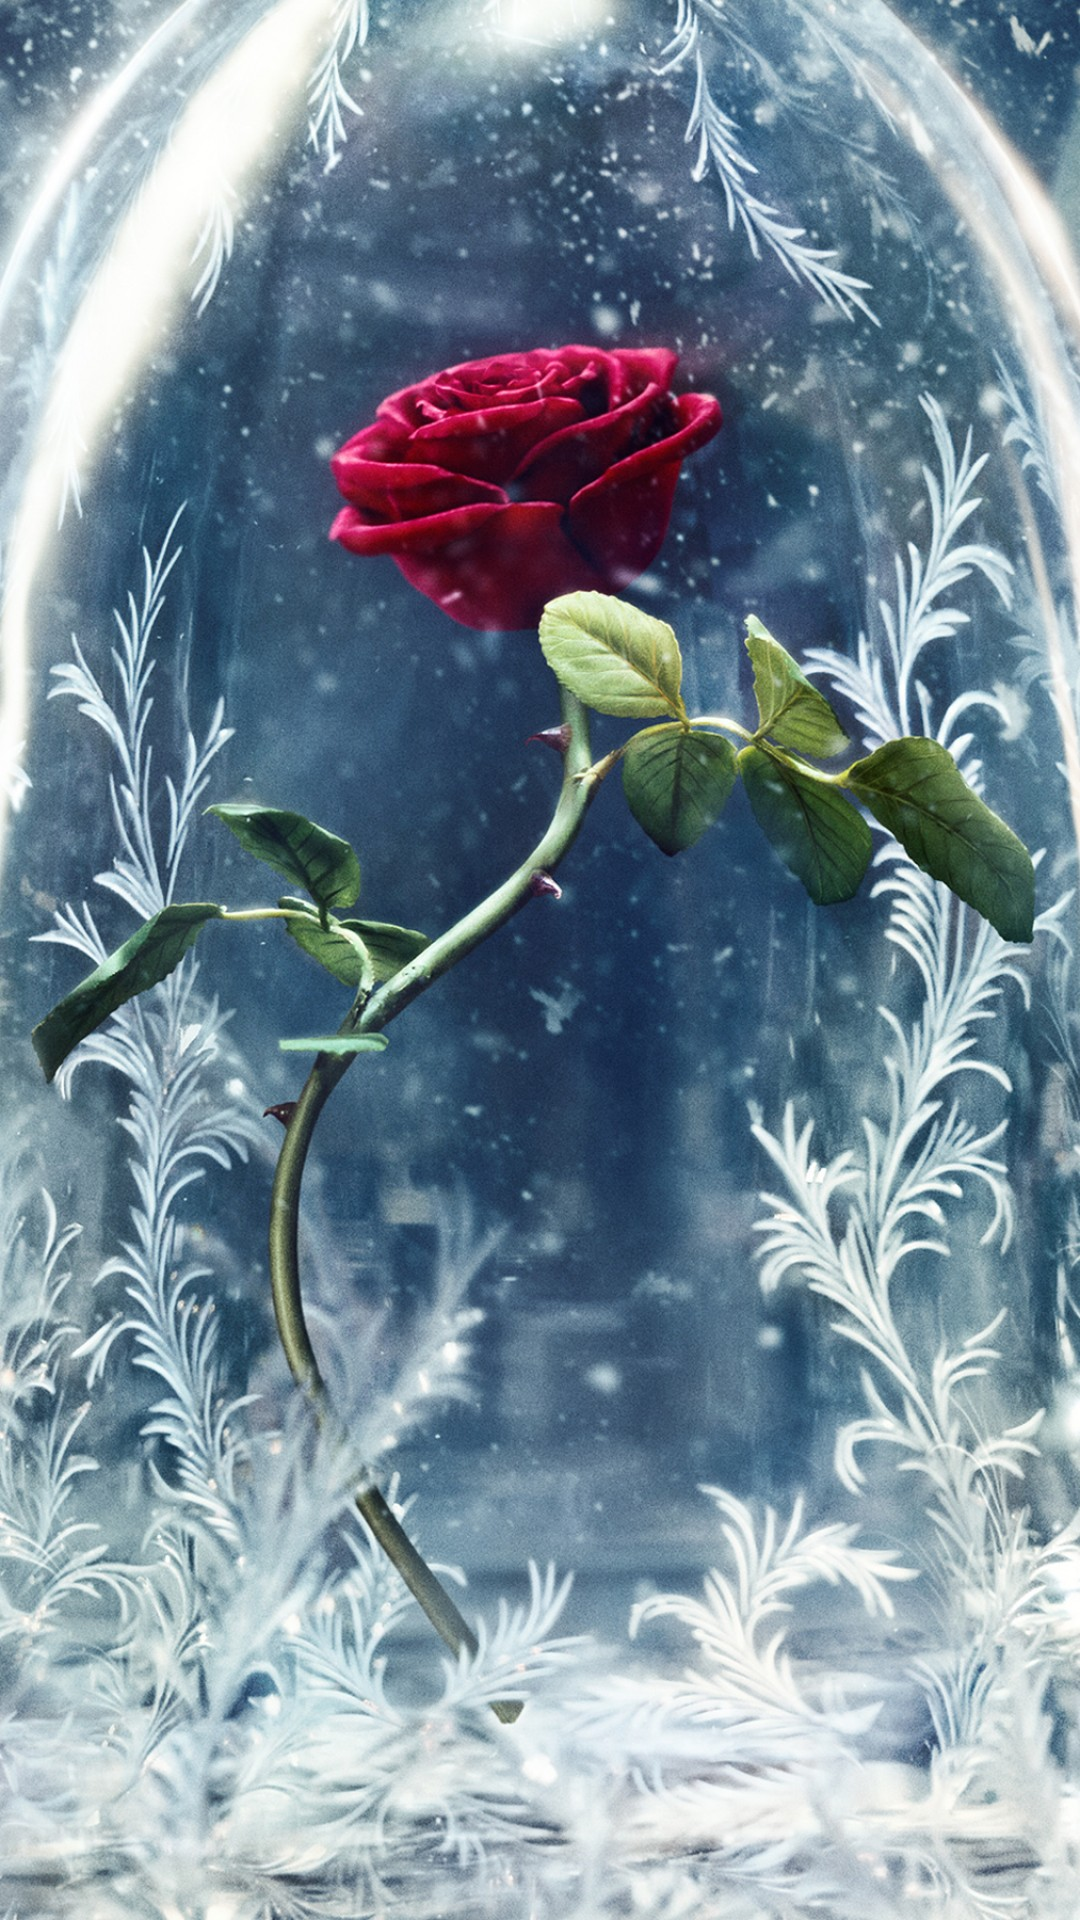 Wallpaper Beauty And The Beast Glass Rose Best Movies Movies 12848